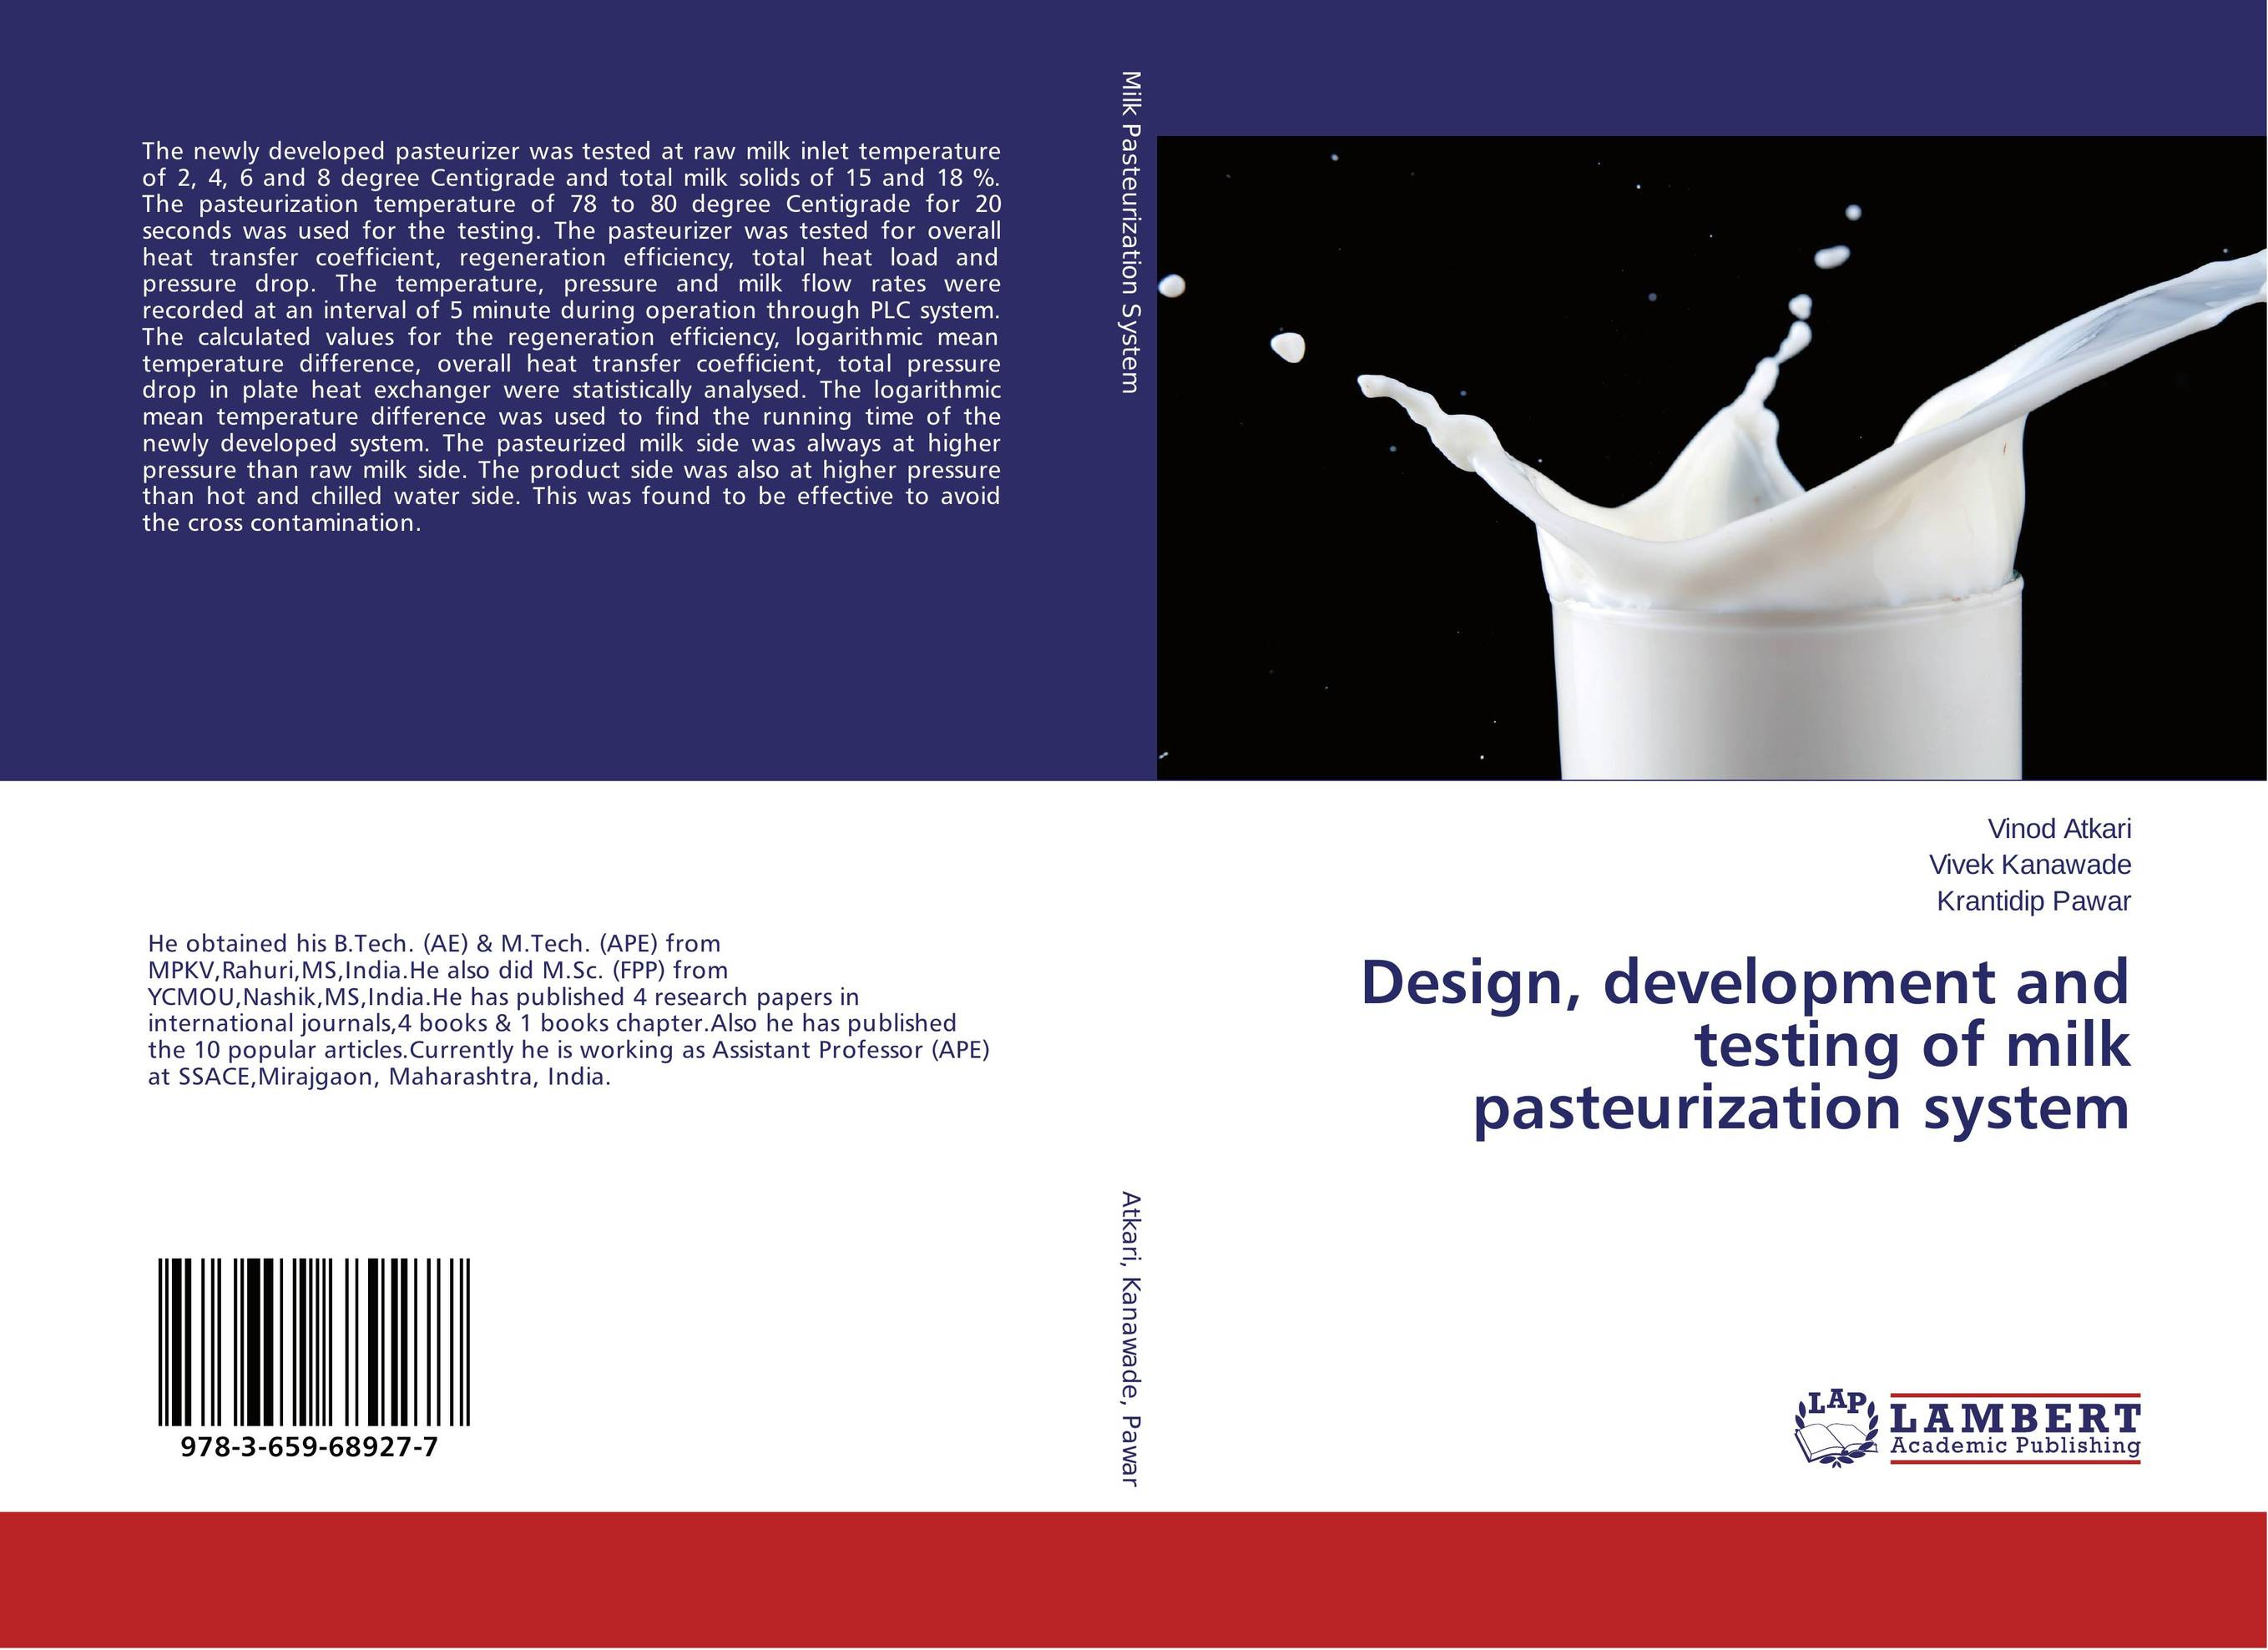 Design, development and testing of milk pasteurization system economizer forces heat transmission from liquid to vapour effectively and keep pressure drop down to a reasonable level